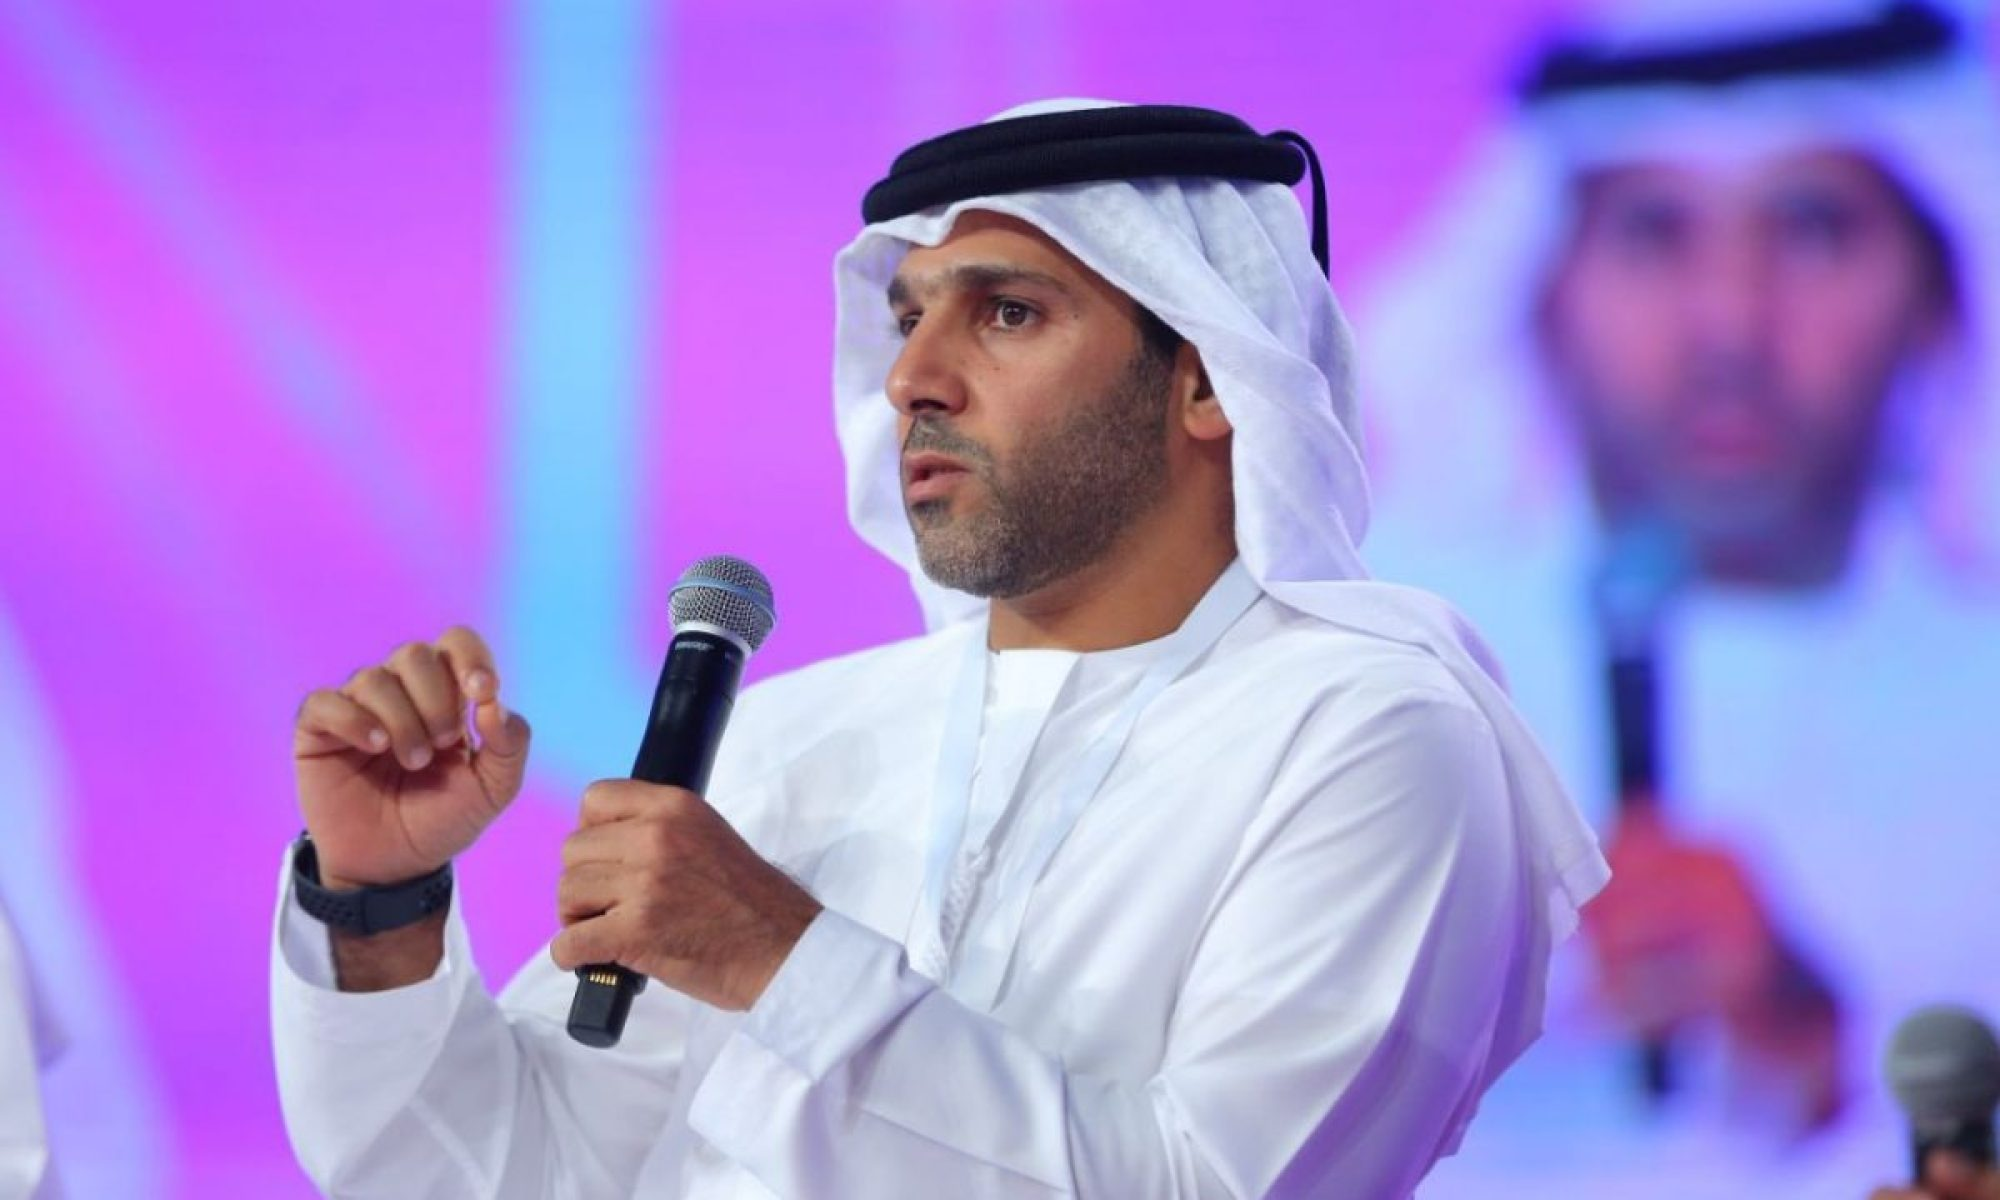 The Human Resource Authority, Abu Dhabi Global Market Academy and First Abu Dhabi Bank launch 'The Bankers Programme'